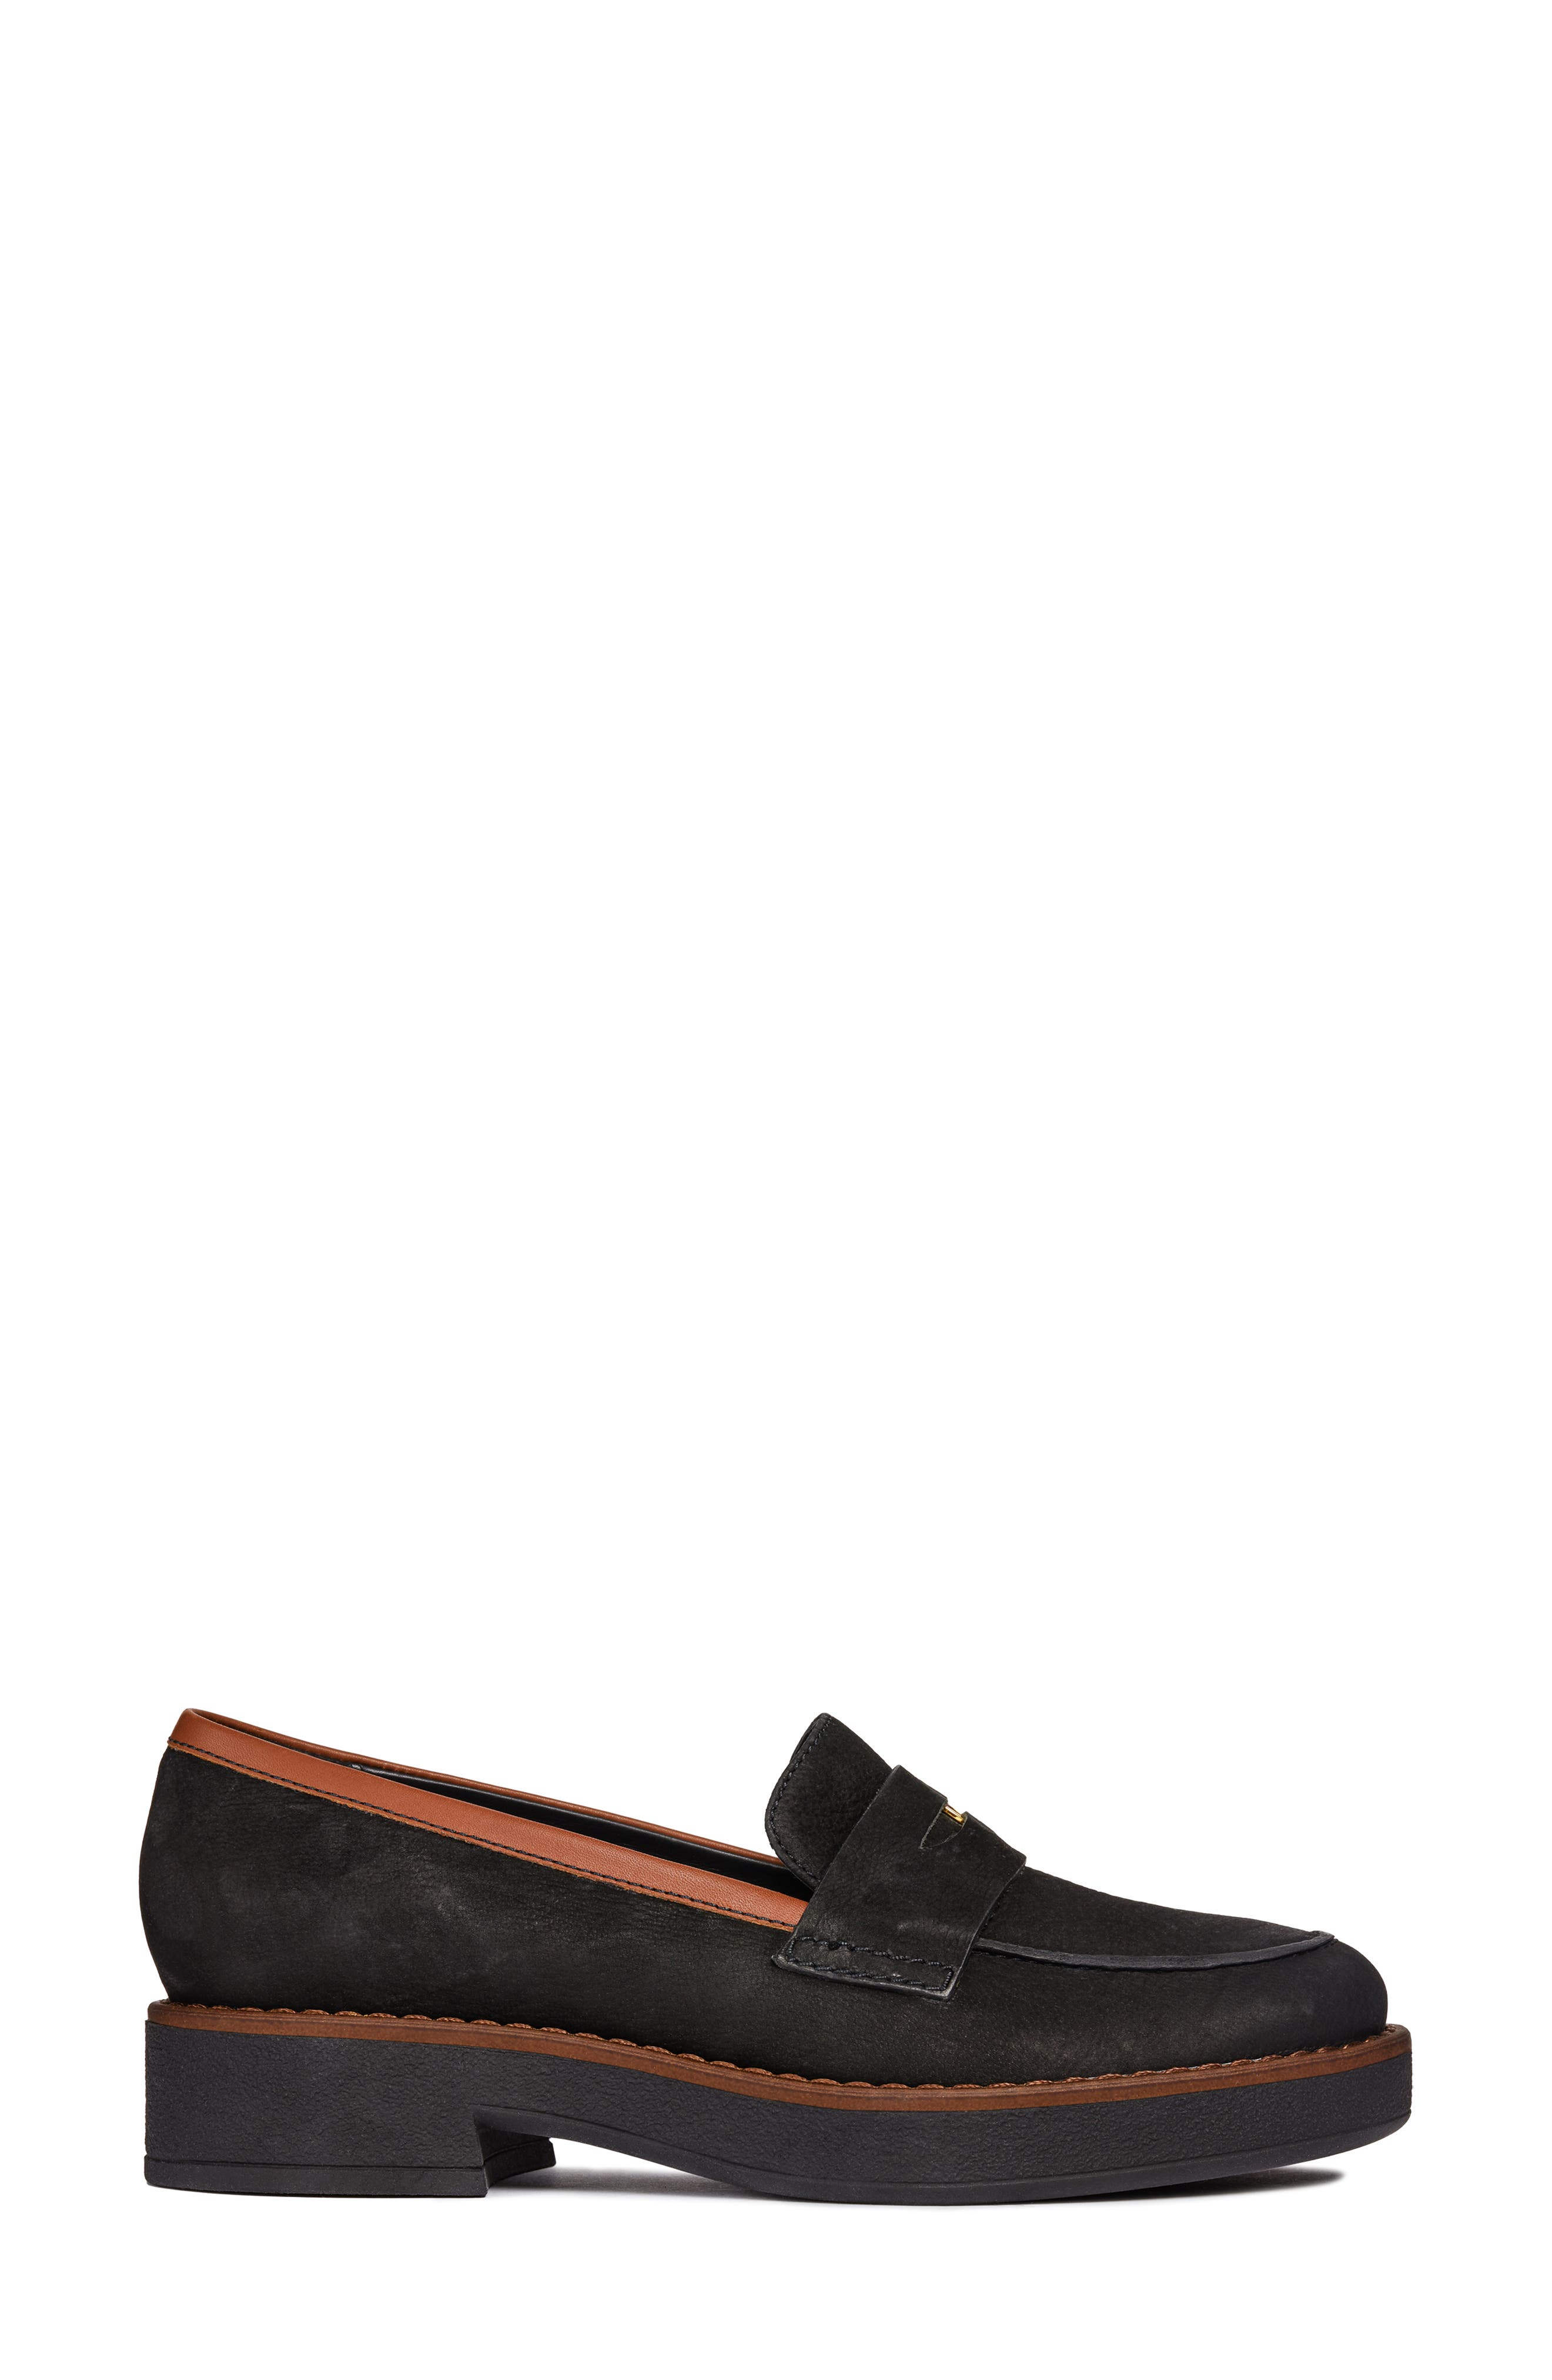 Adrya Loafer,                             Alternate thumbnail 3, color,                             BLACK/ BROWN NUBUCK LEATHER